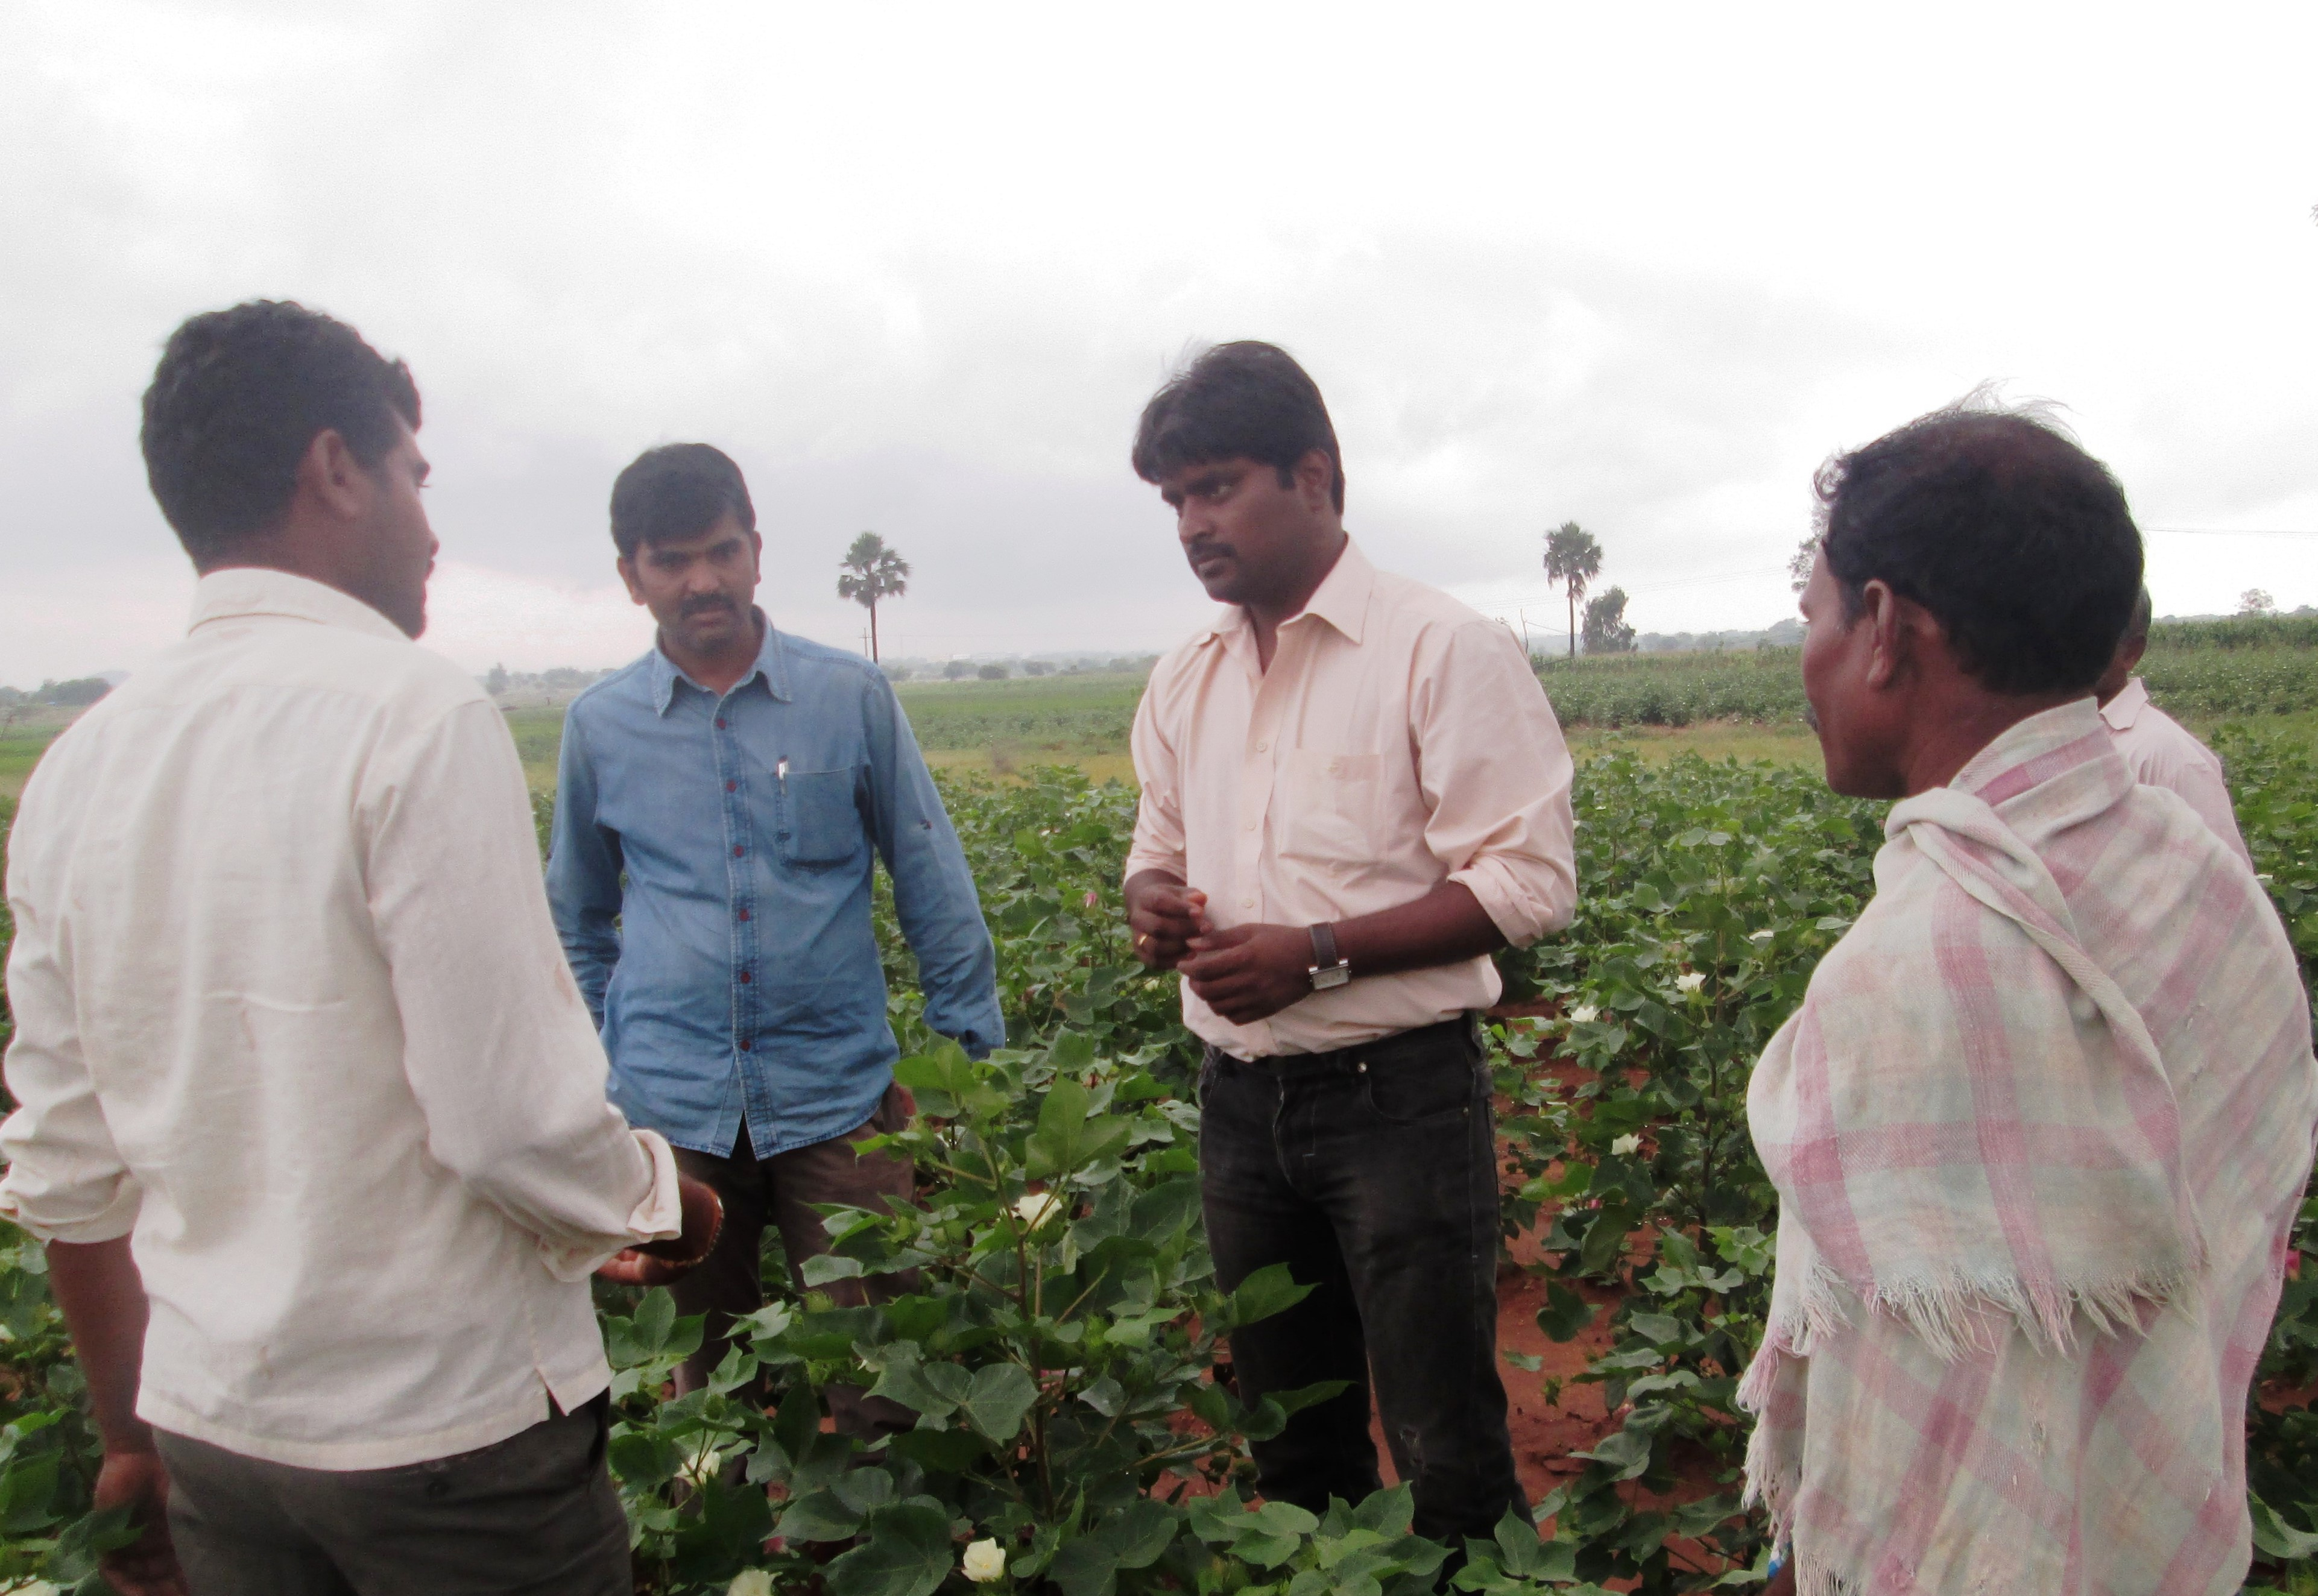 Aneel Kumar Ambavaram – improves lives of tribal farmers by providing assistance in production and marketing